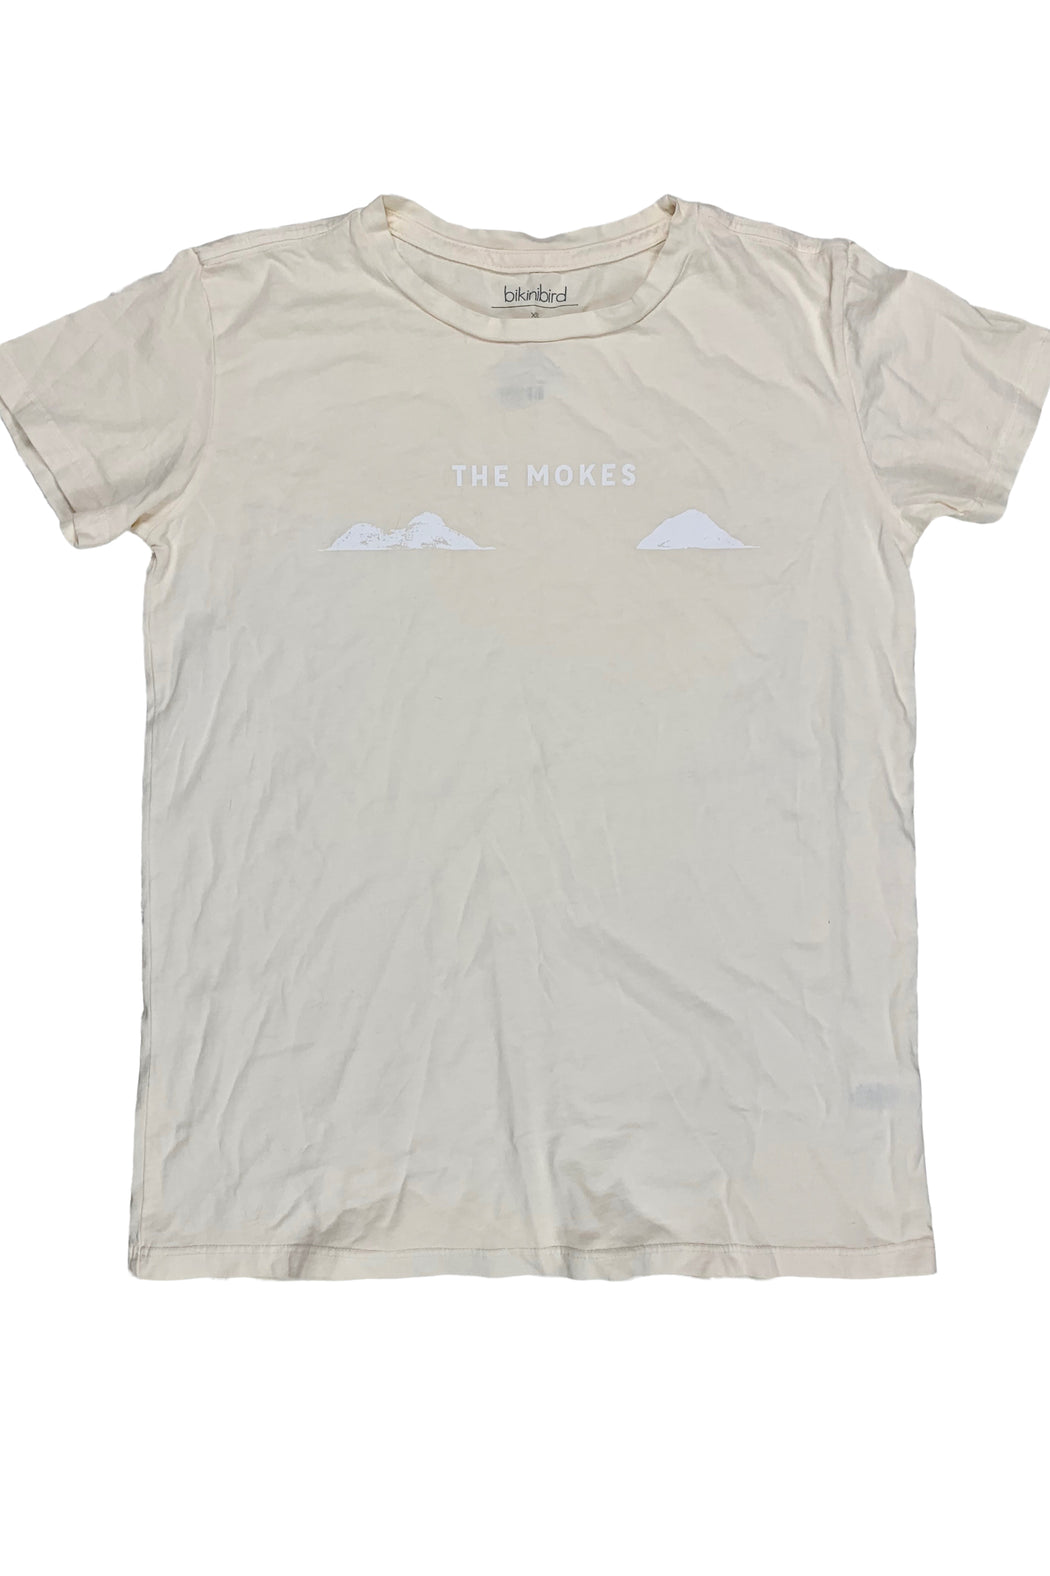 BikiniBird Mokes Tee in Cream